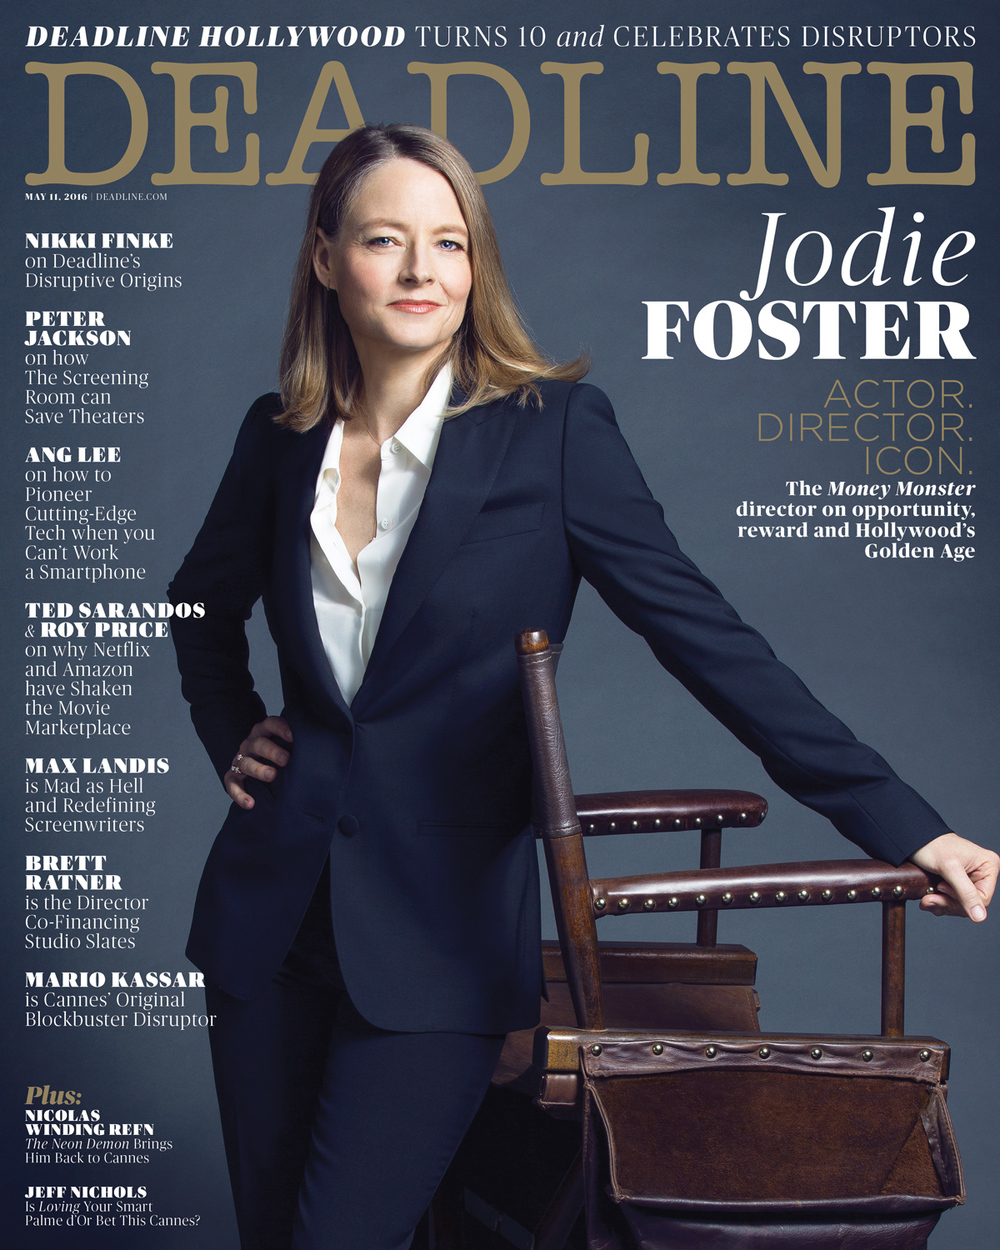 Deadline 10-Year Anniversary Issue, Jodie Foster